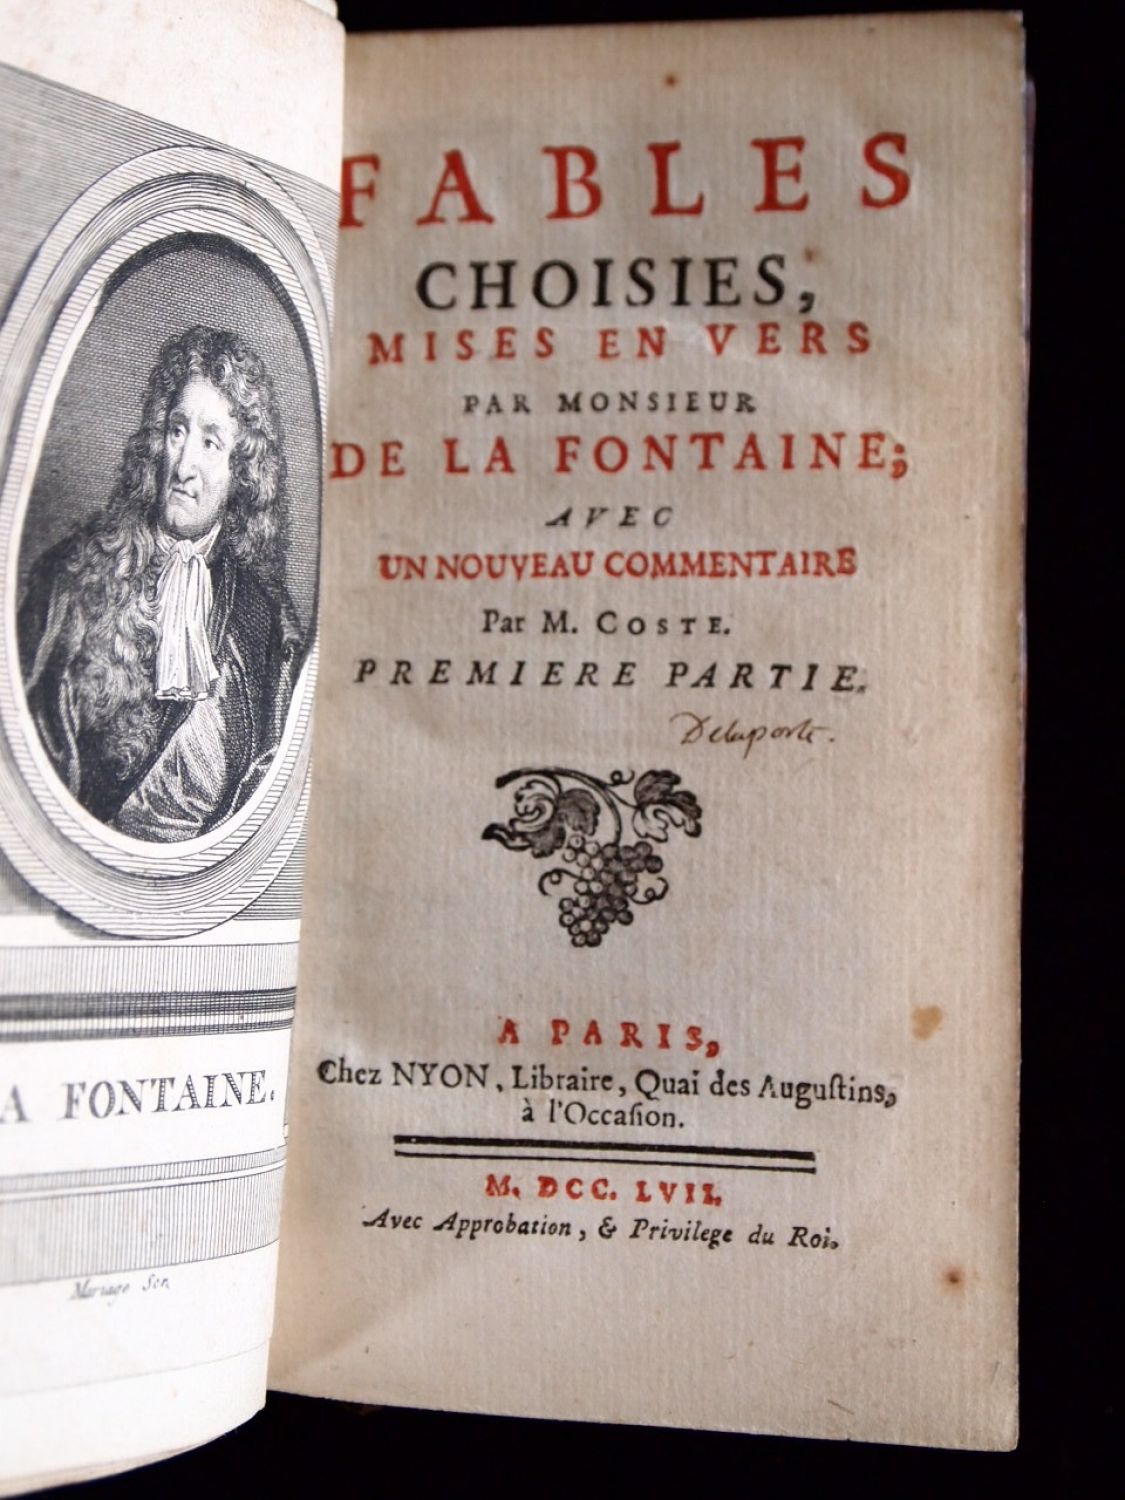 Fables Choisies by Fontaine